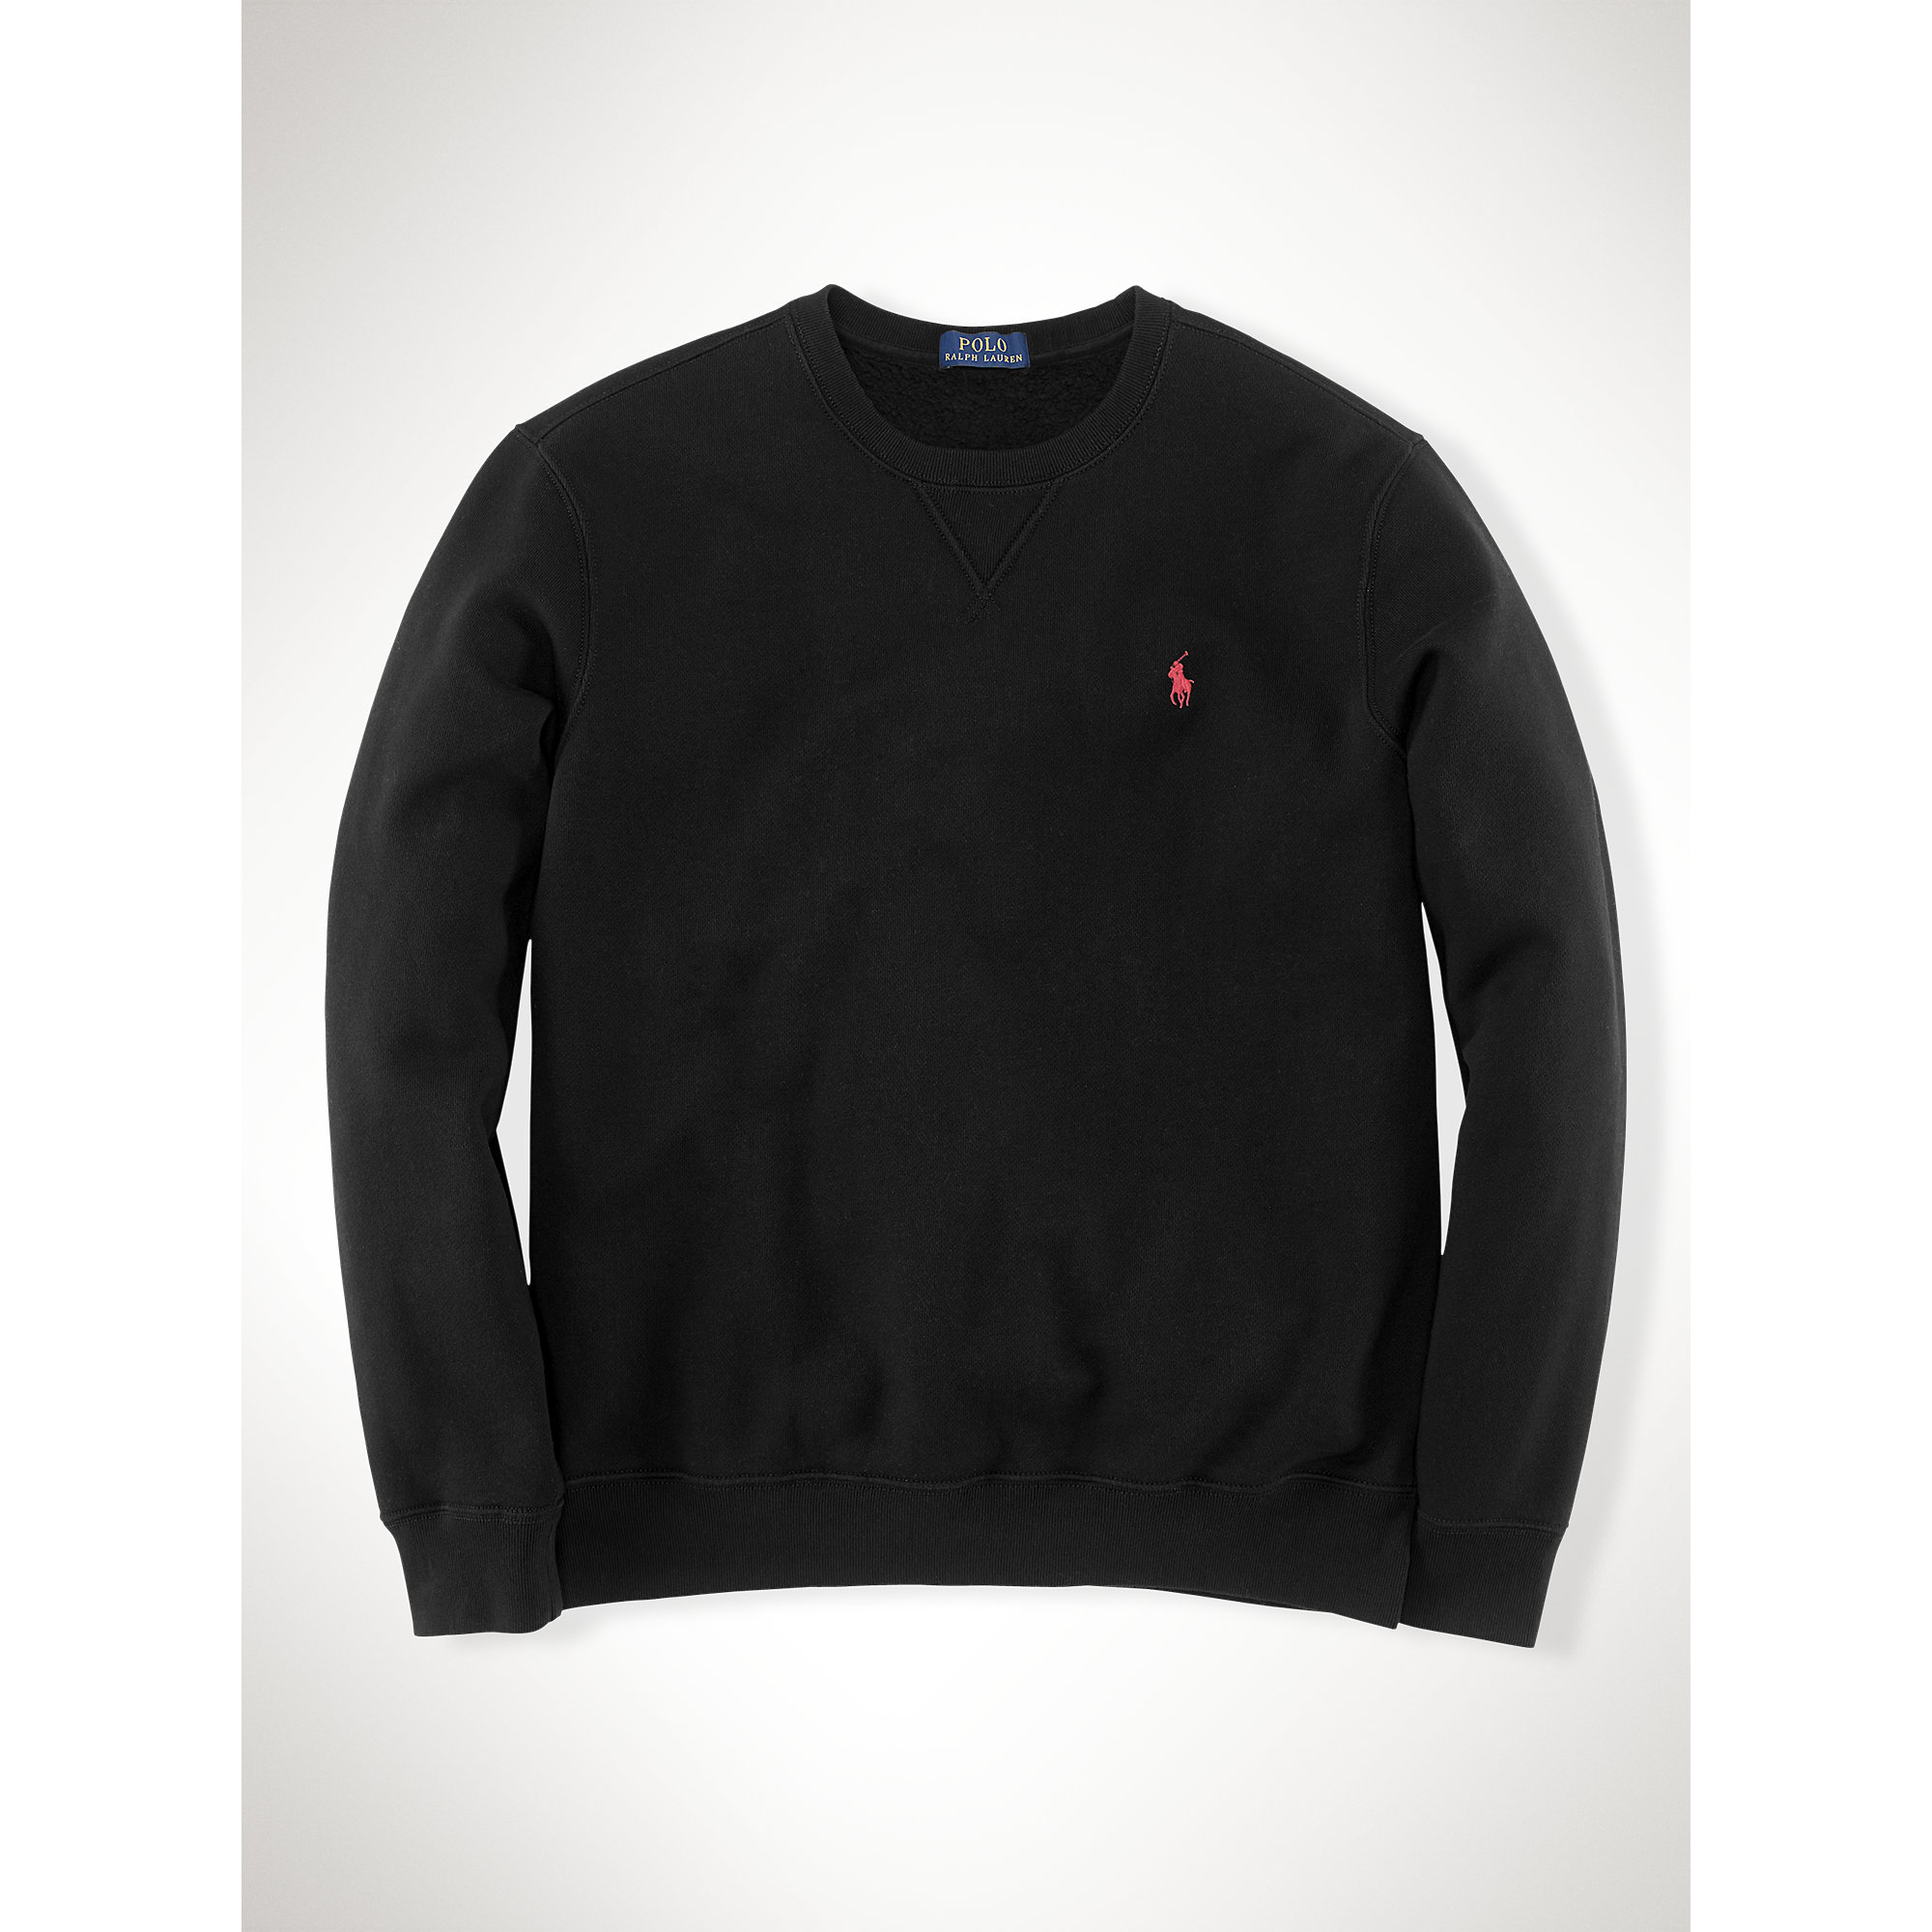 polo ralph lauren cotton blend fleece sweatshirt in black for men lyst. Black Bedroom Furniture Sets. Home Design Ideas